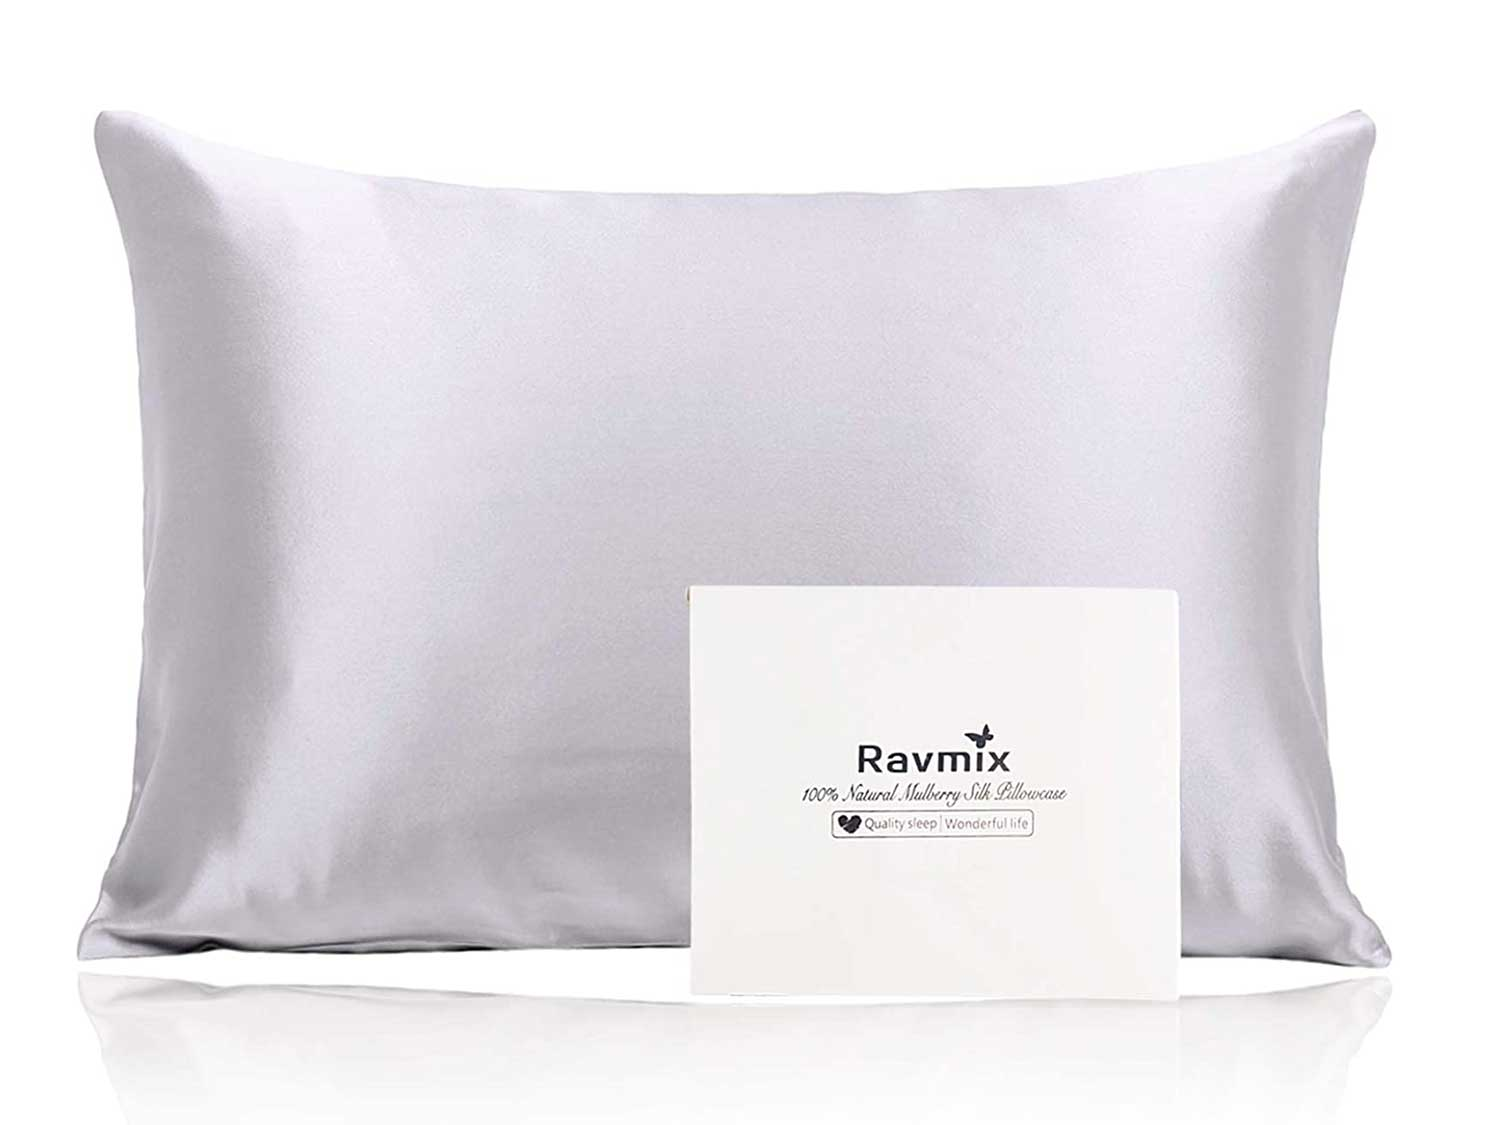 Ravmix 100% Pure Mulberry Silk Pillowcase for Hair and Skin with Hidden Zipper, Both Sides 21 Momme Natural Silk, 1PCS, Standard Size 20×26inch, Silver Grey